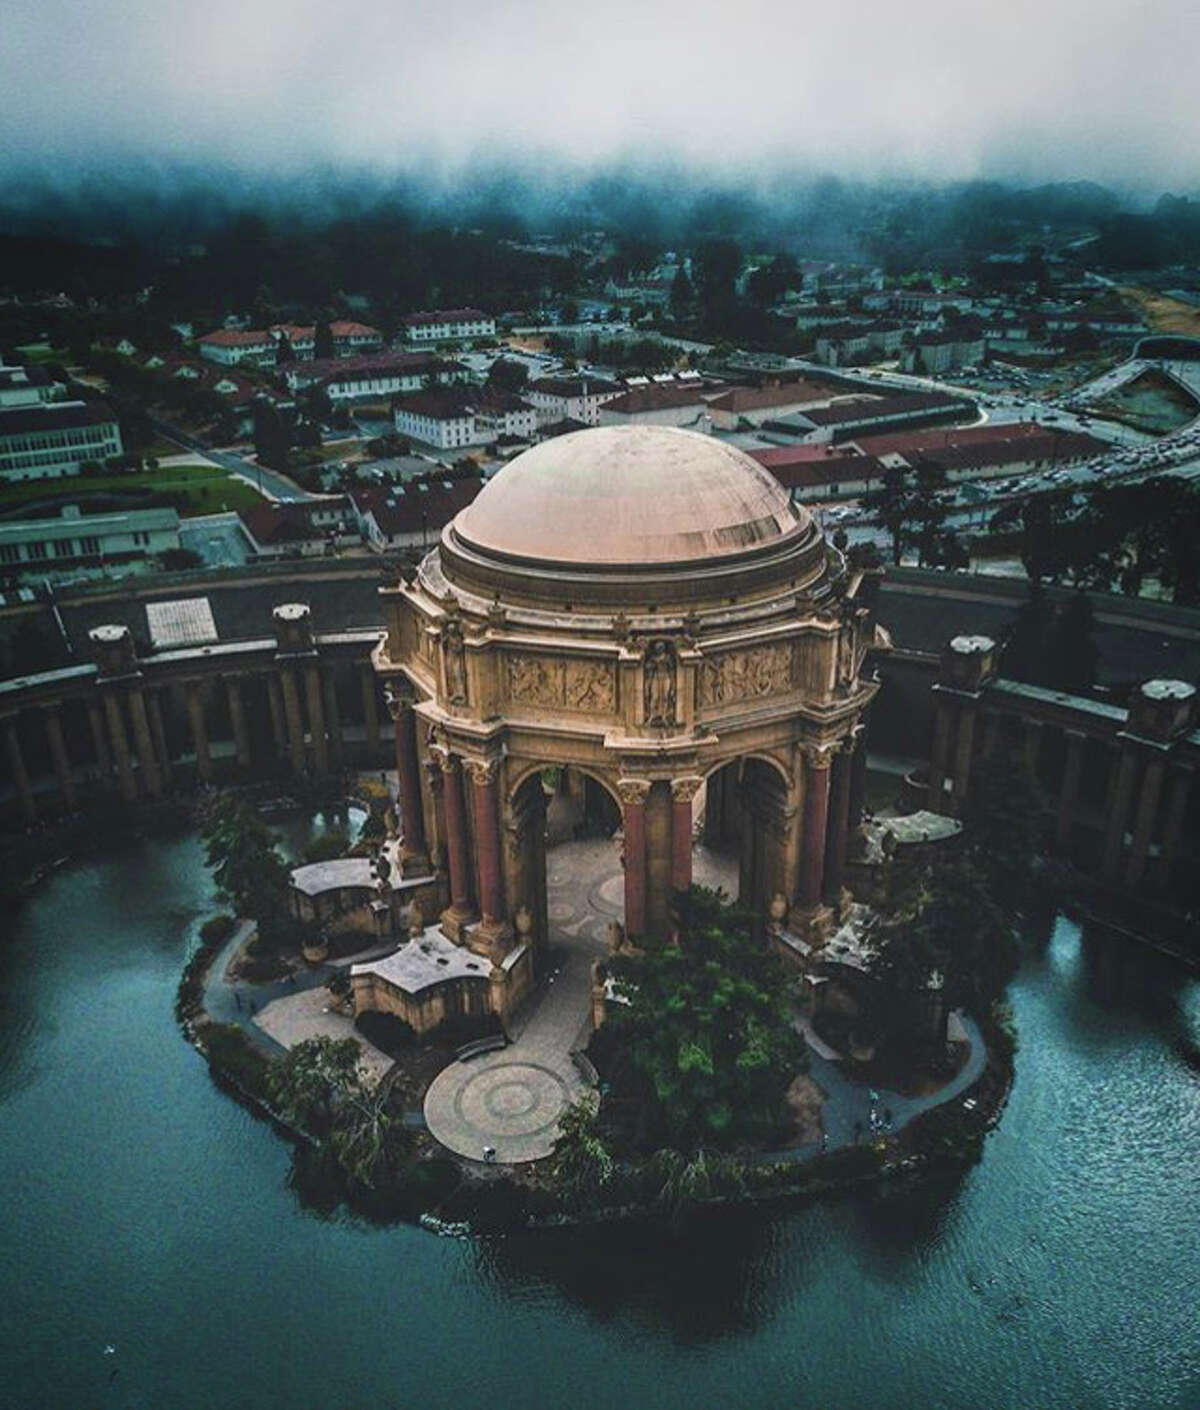 @bendayhoe spotted the Palace of Fine Arts through the fog.